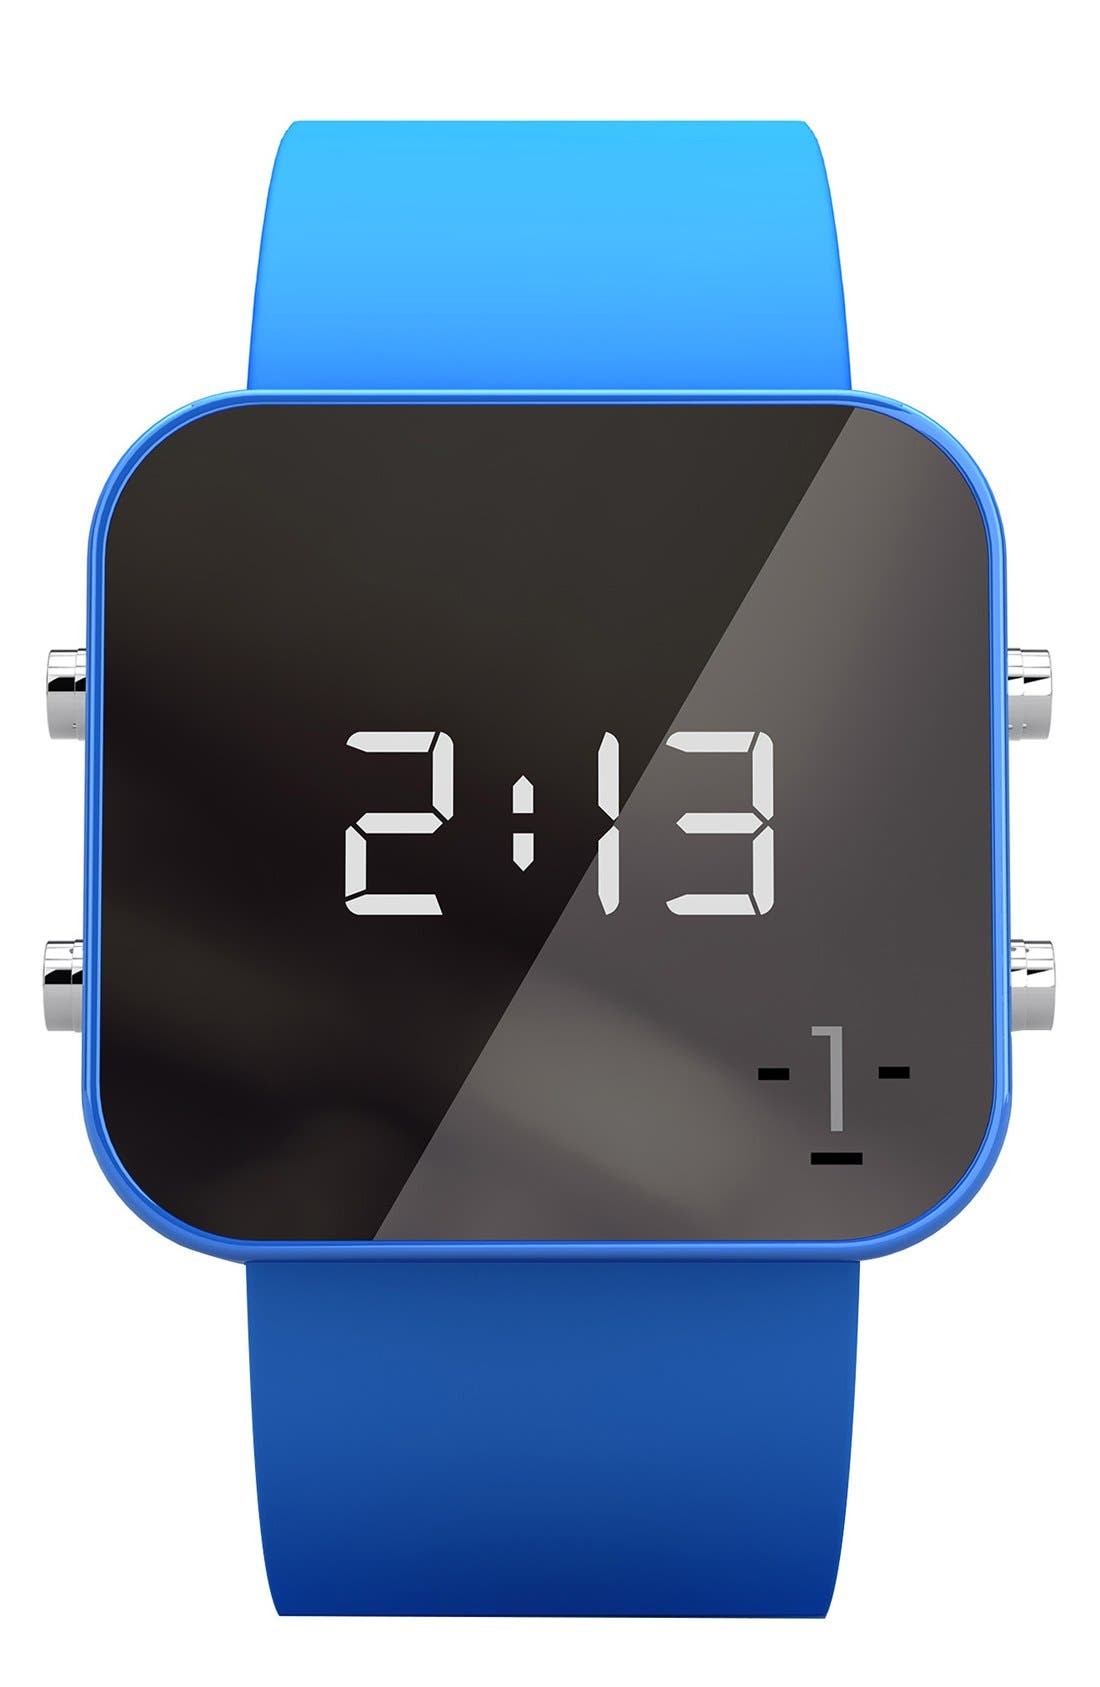 Main Image - 1:Face 'Environment' Square Digital Silicone Strap Watch, 38mm